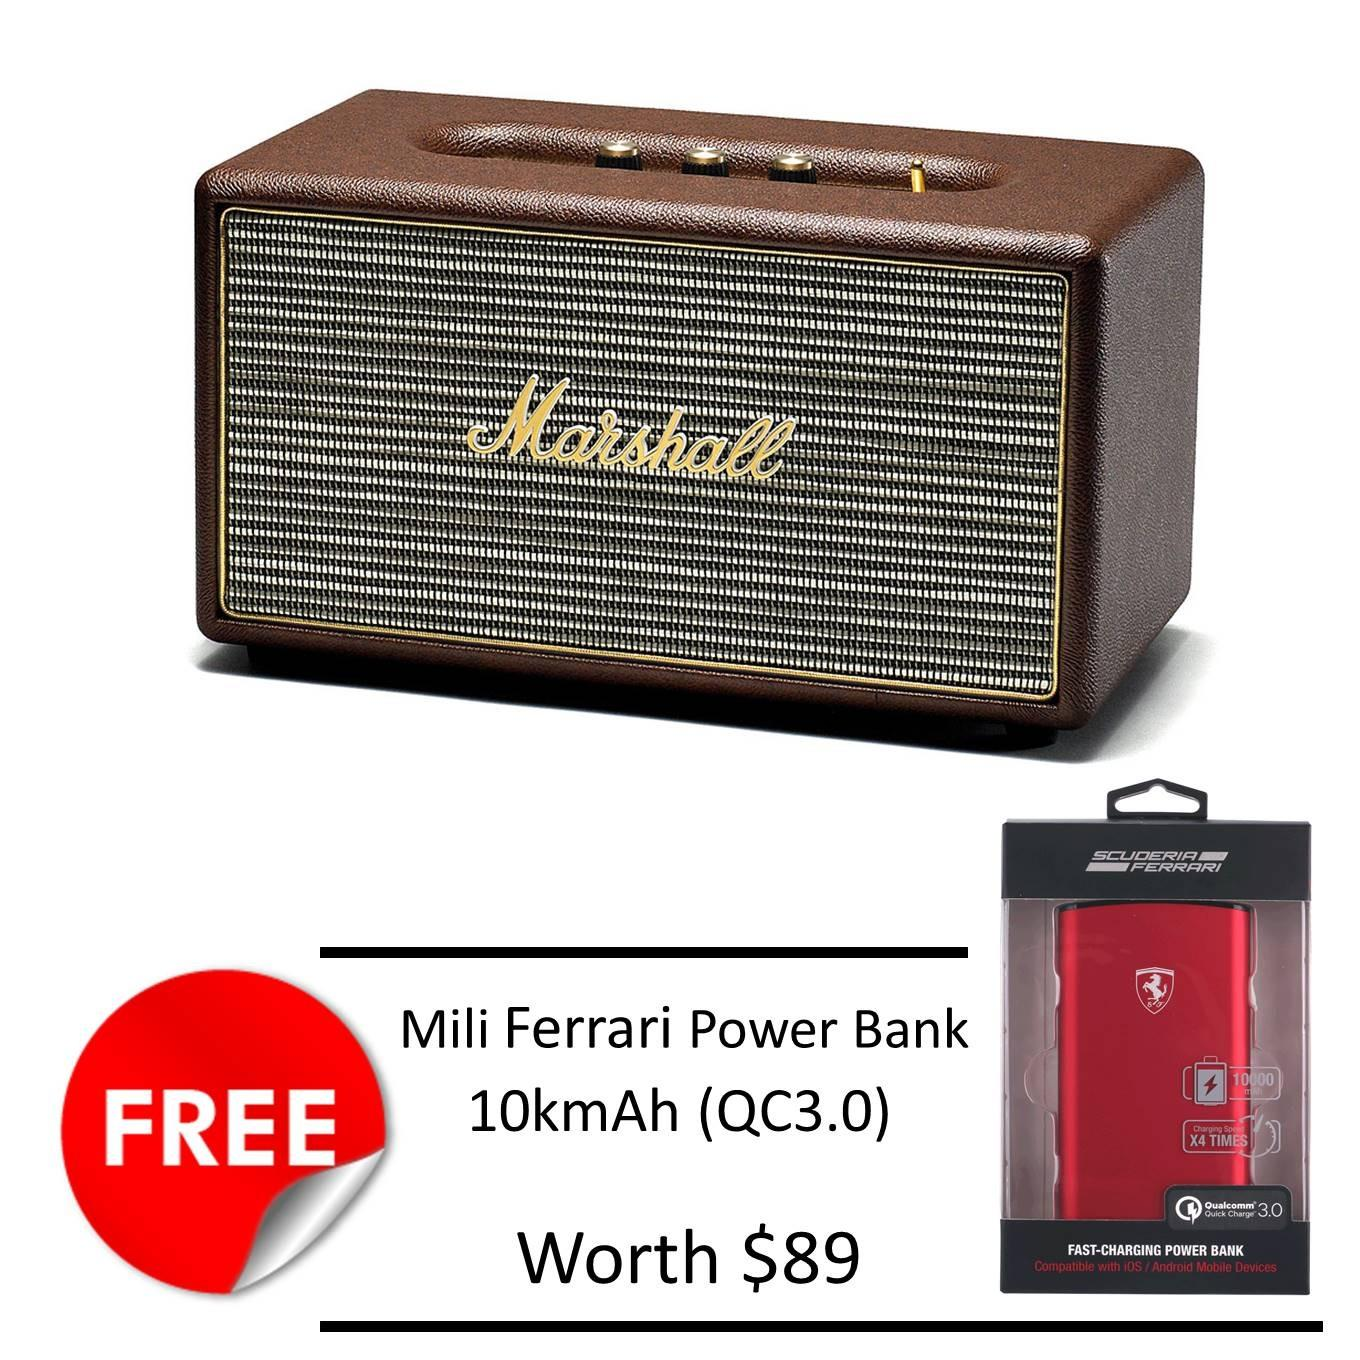 How Do I Get Marshall Stanmore Bluetooth Speaker Brown Free Mili Ferrari 10Kmah Powerbank